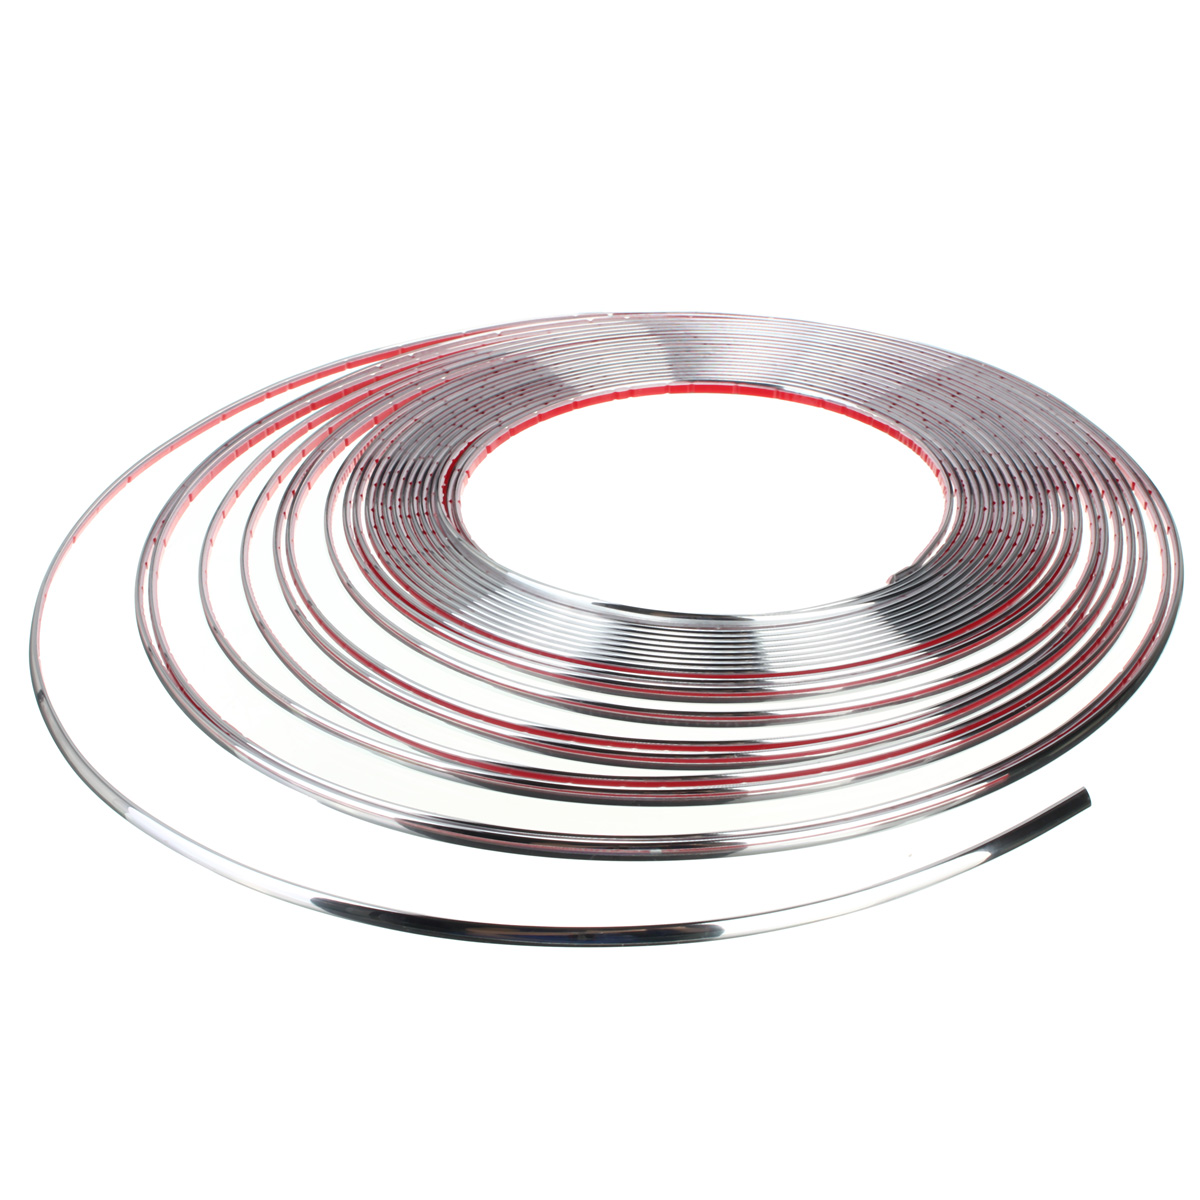 DIY Silver 15M 6mm Car Auto Chrome Moulding Trim Strip For Window Bumper Grille